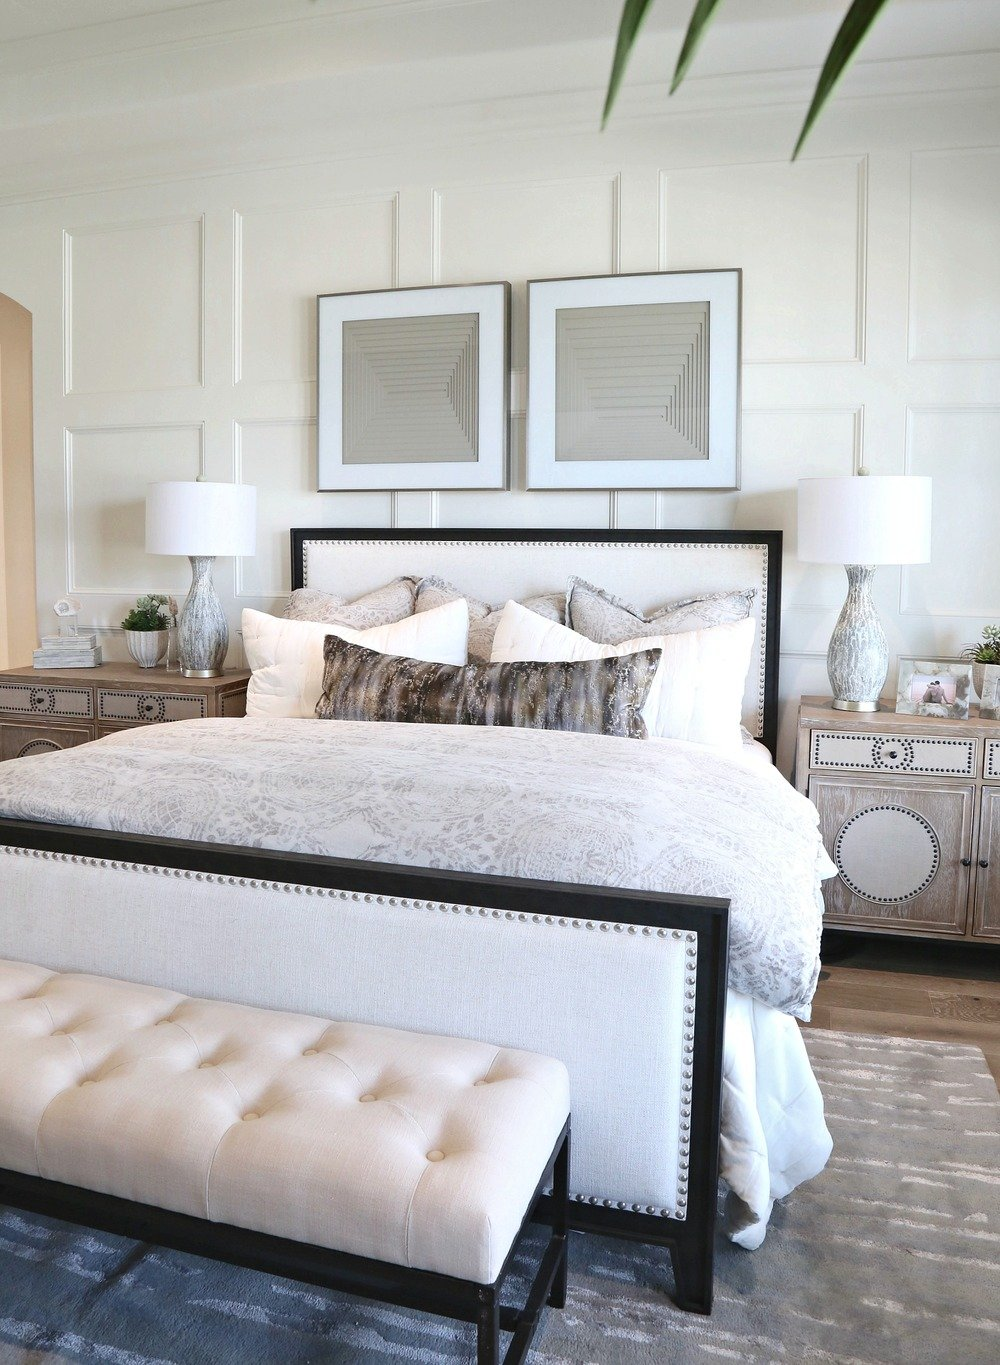 White Paint Color Trends. Wall Color Is Garlic Clove By PPG